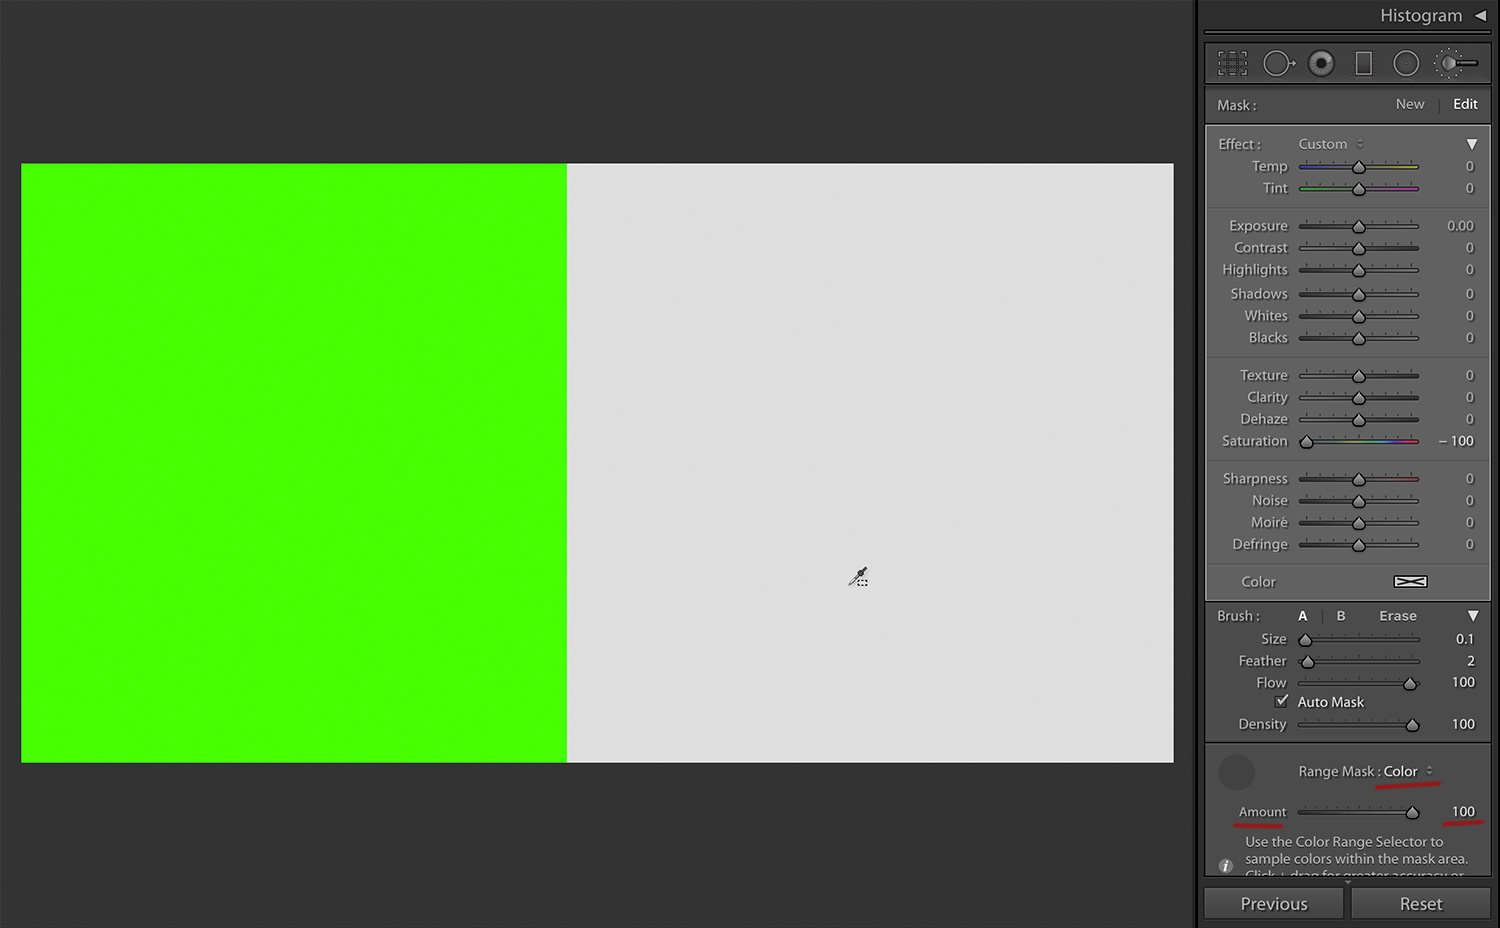 Two shades of green, desaturated - with Range Mask